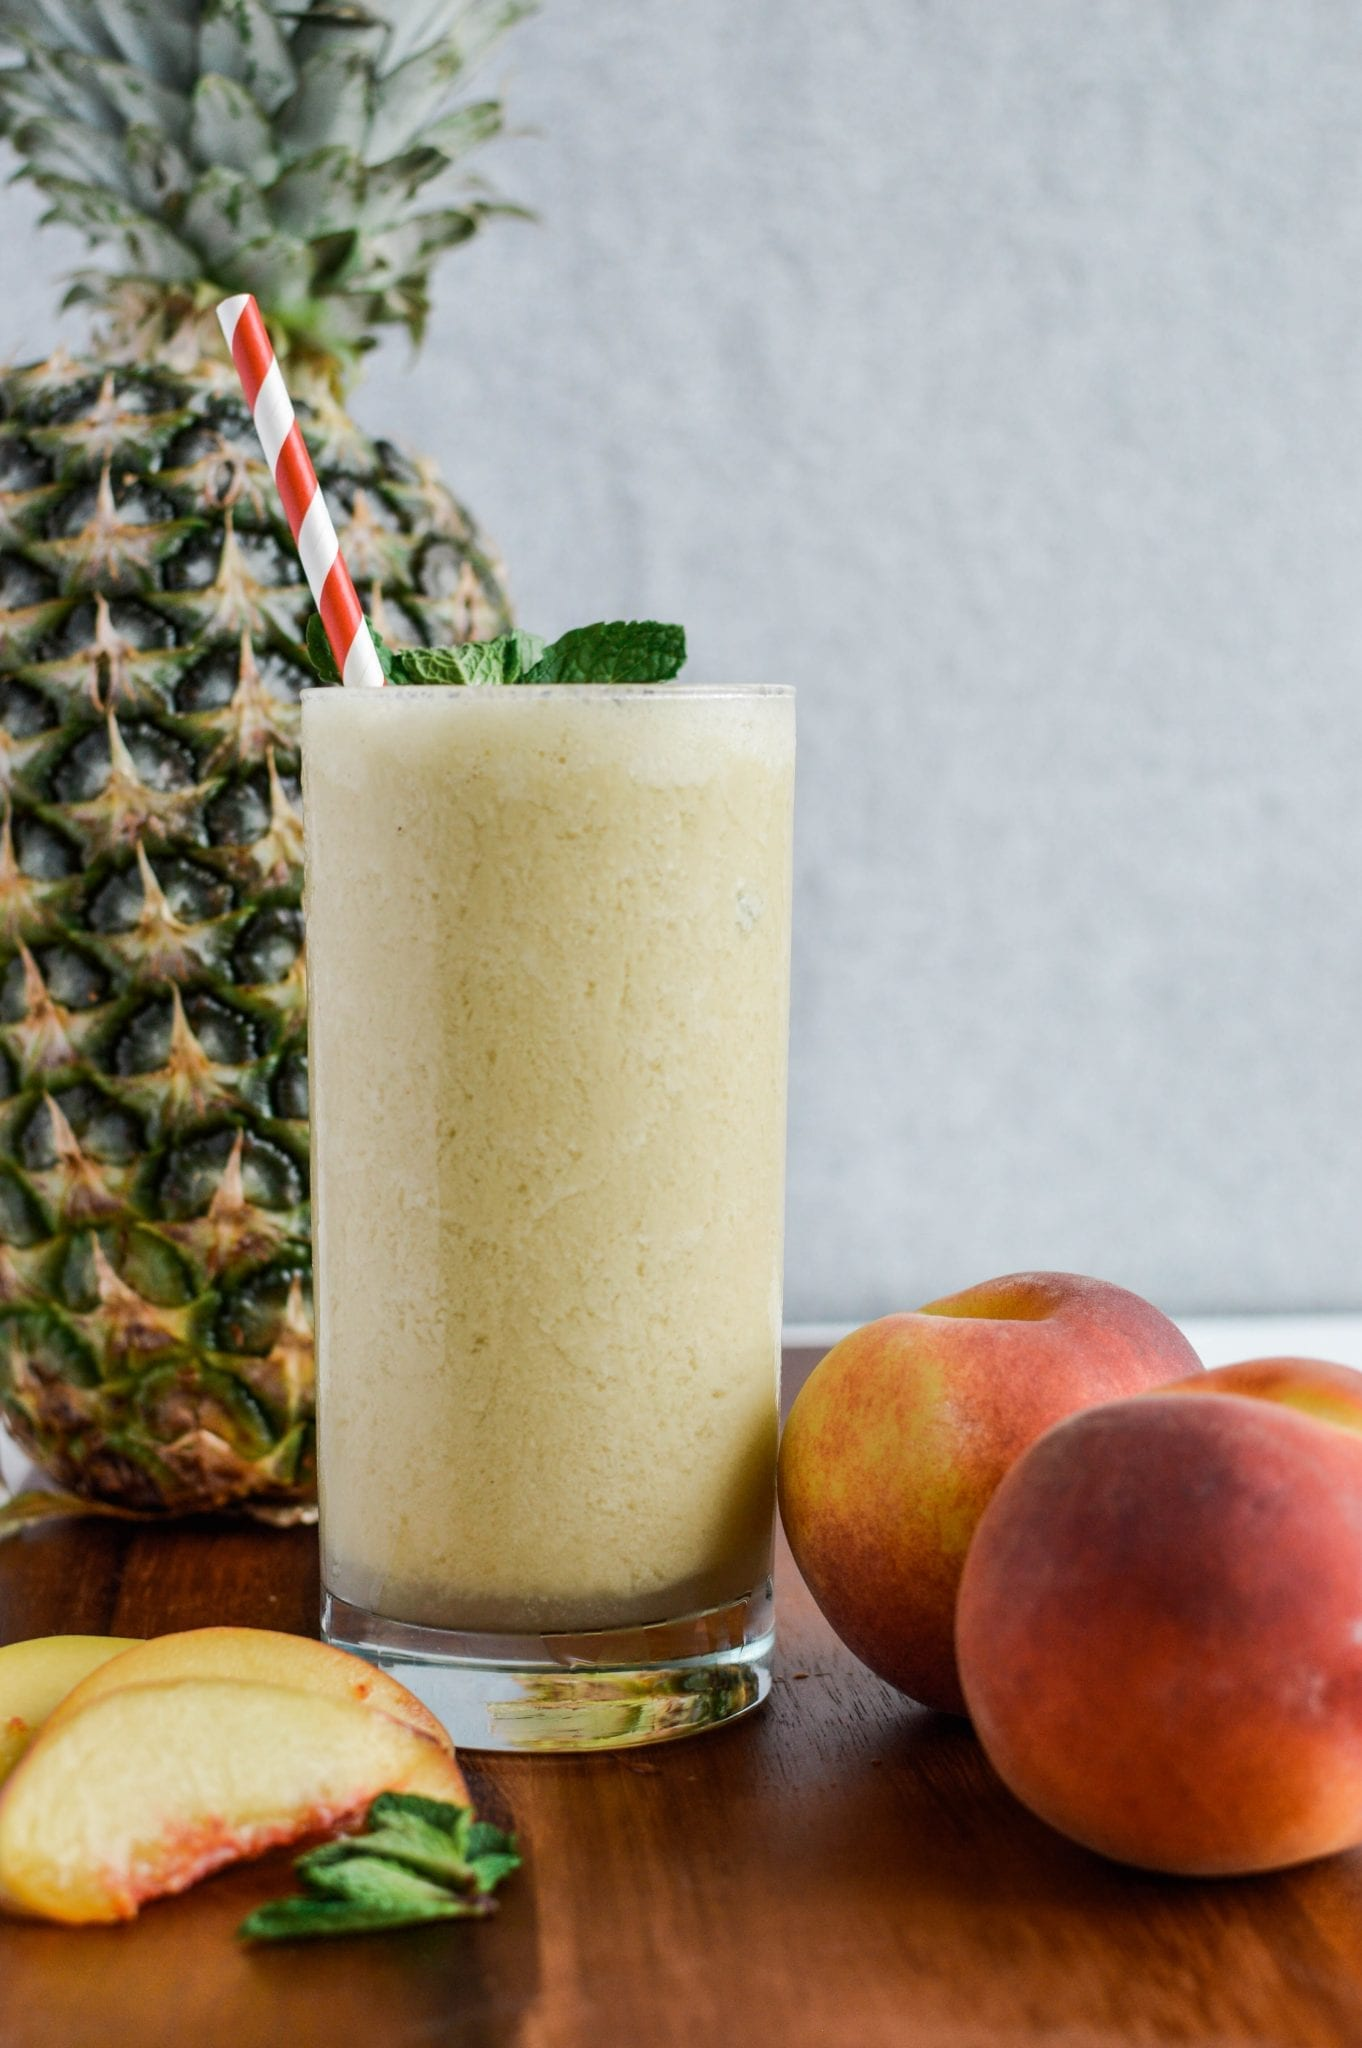 A Refreshing Peach Mint Pineapple Smoothie